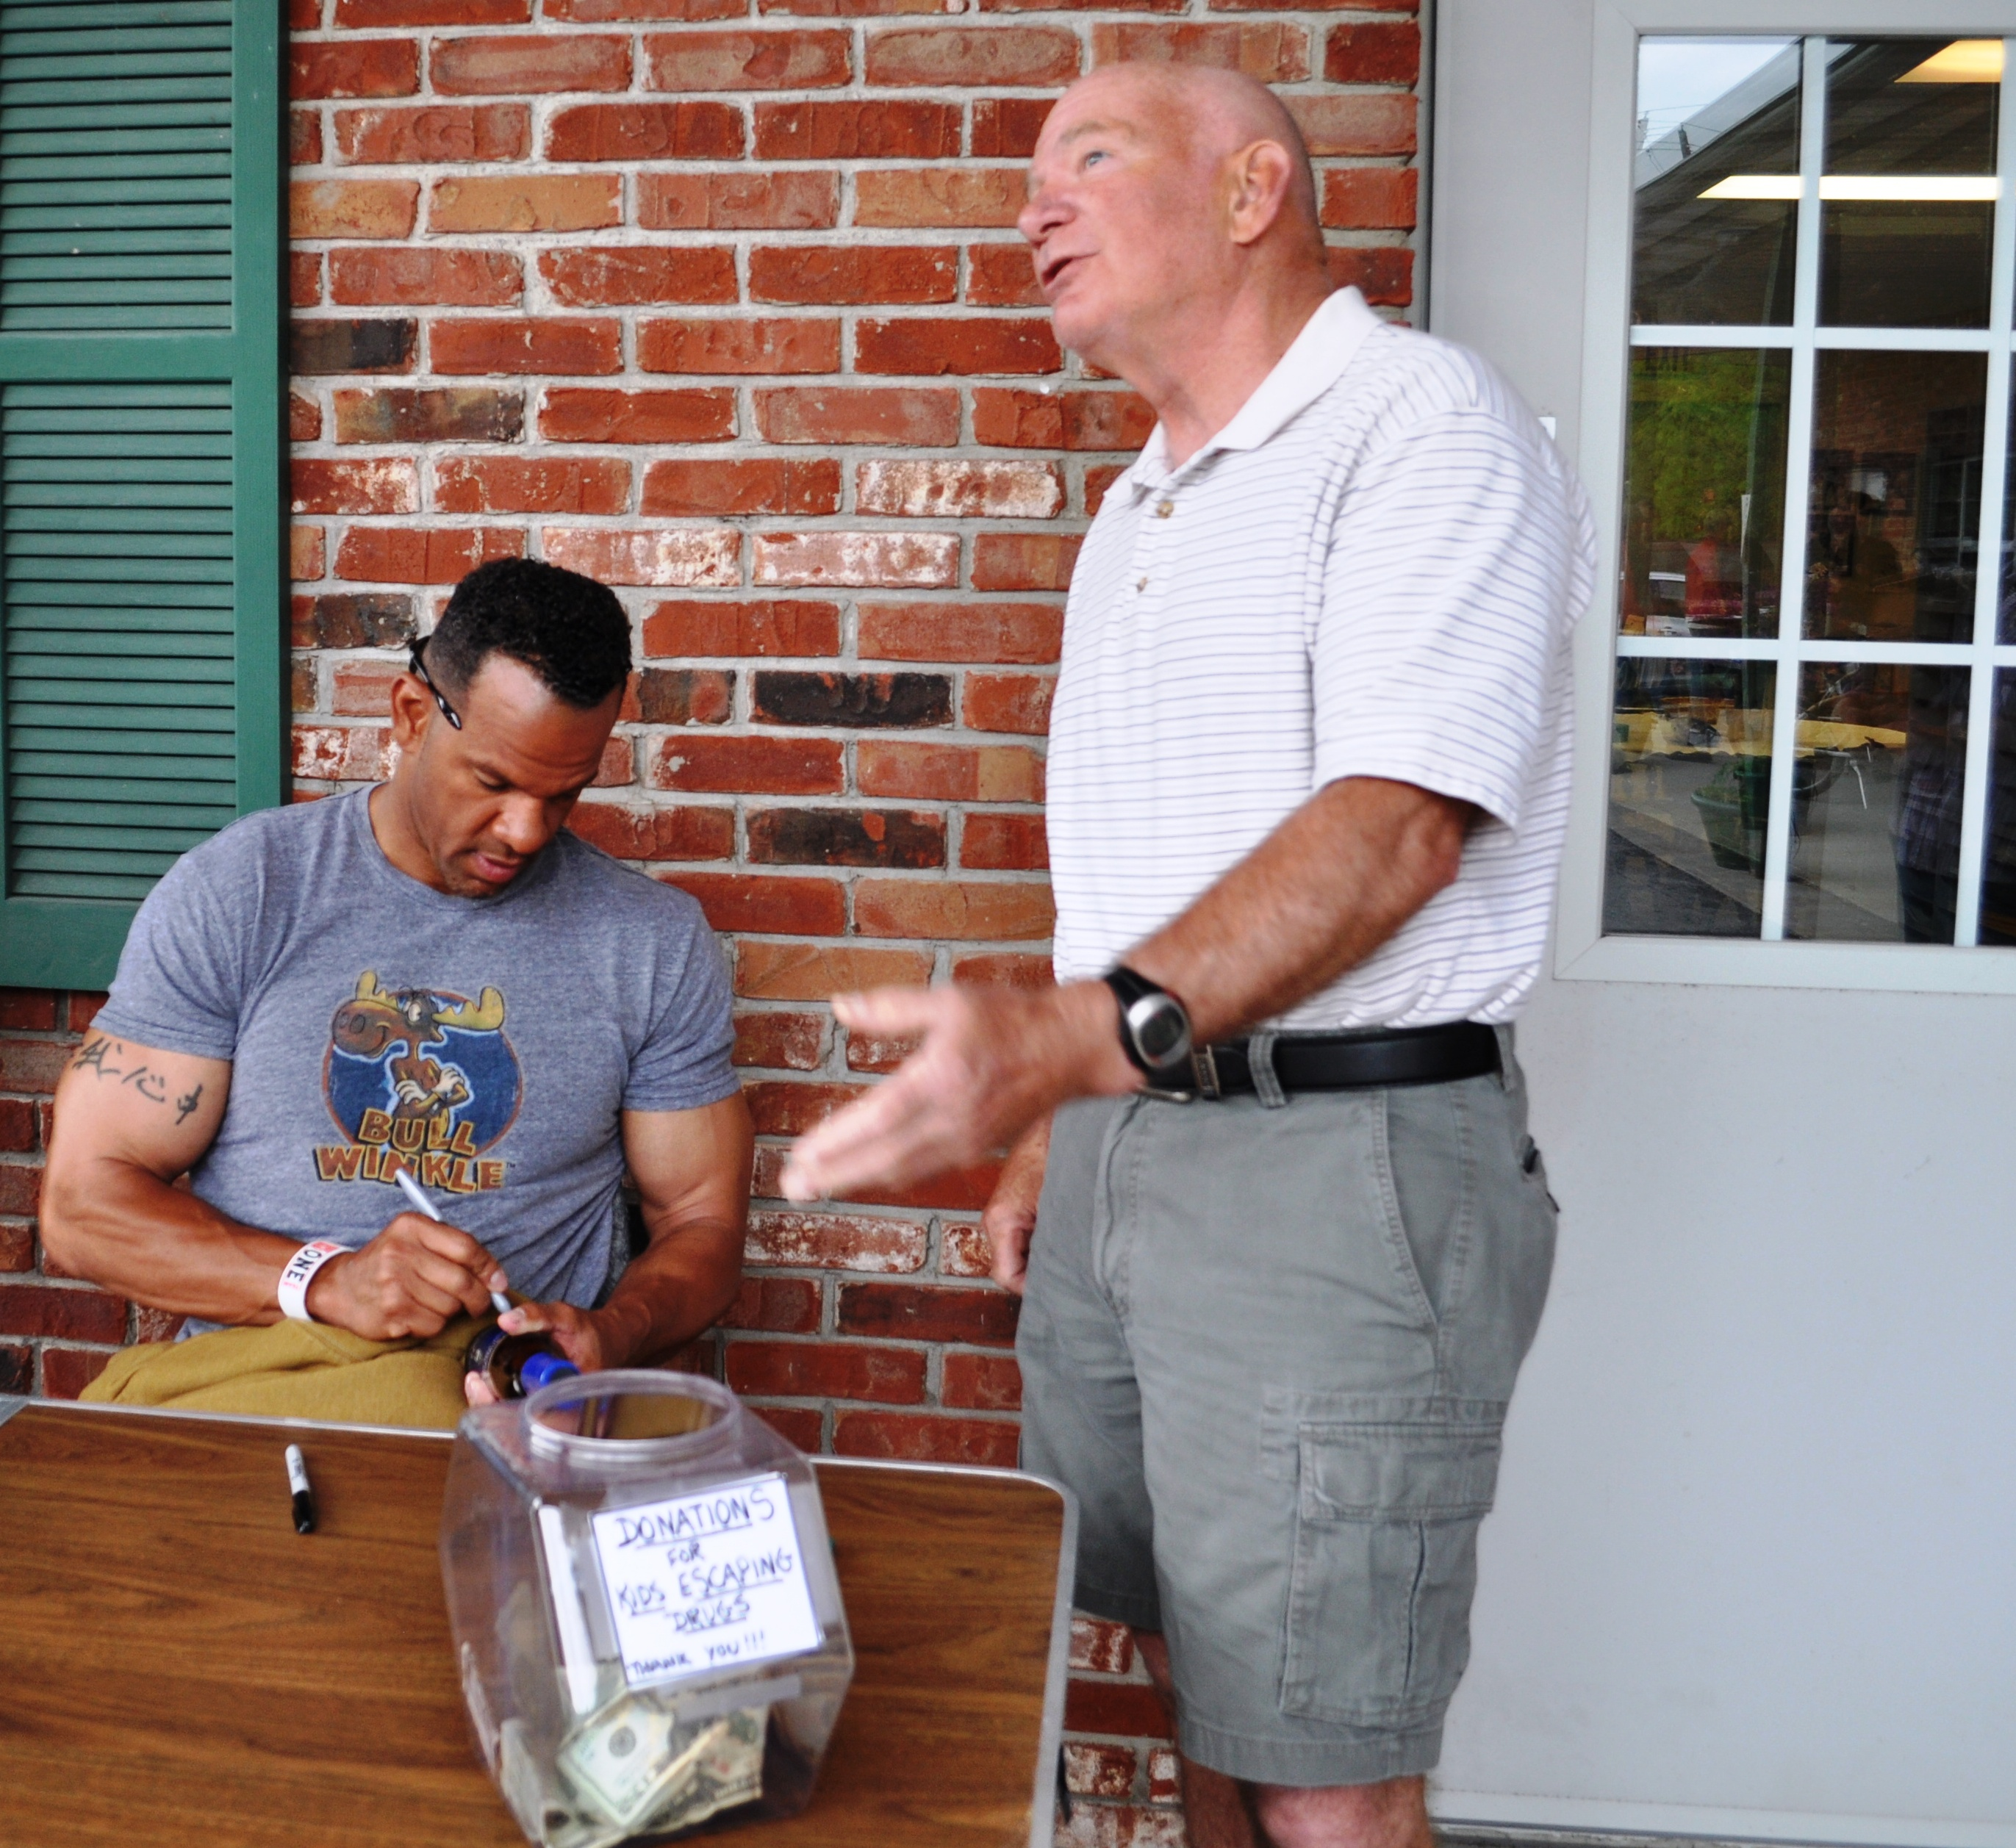 Charles Huber (my dad) Andre Reed, Buffalo Bills Wide Receiver 1985 - 1999, at The Podge in Clarence, N.Y., June 4, 2011